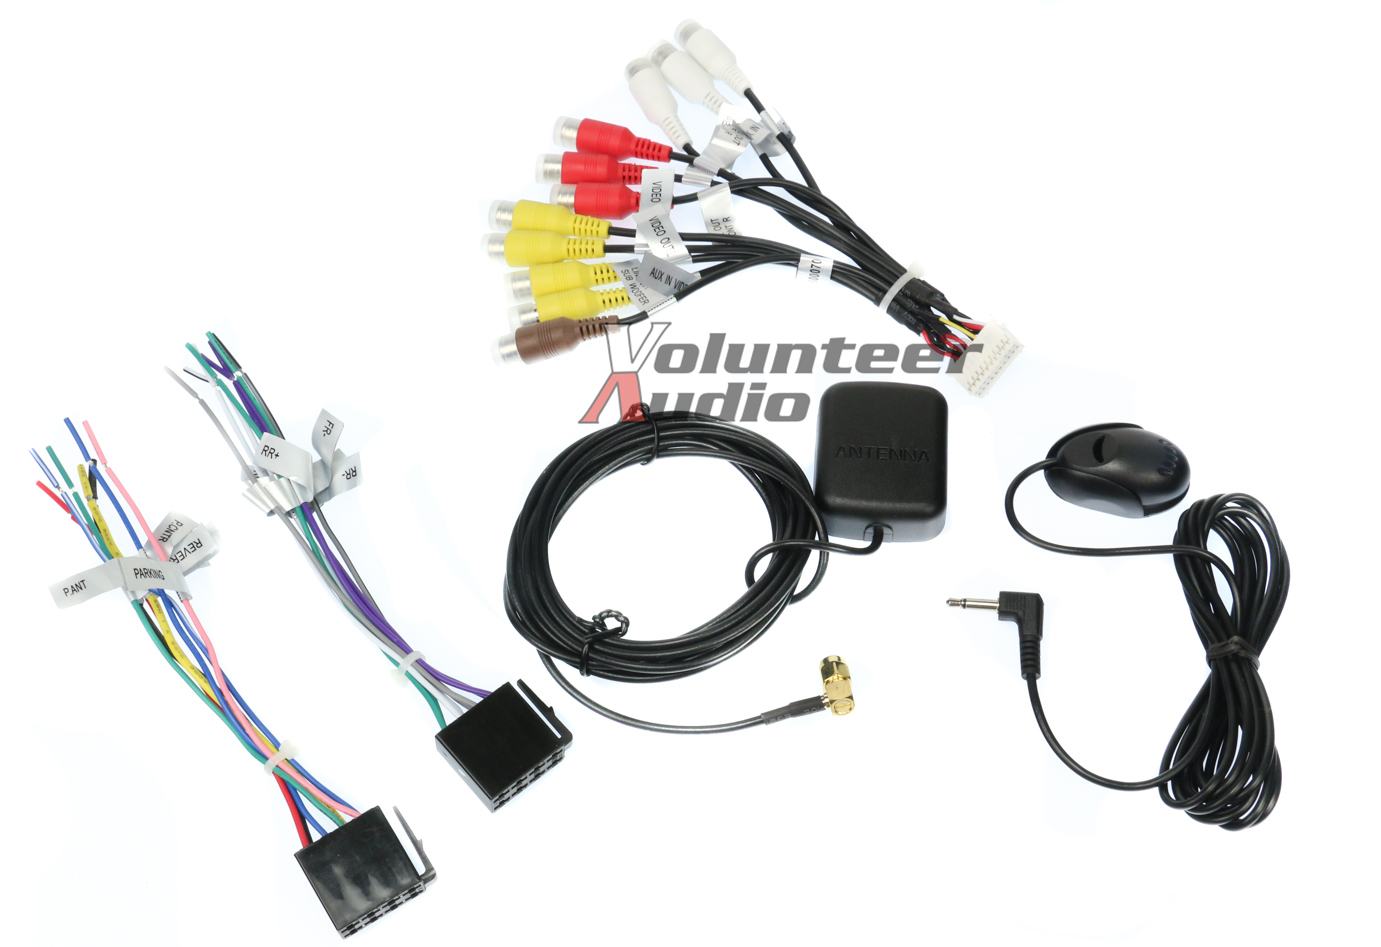 power acoustik wiring harness wiring diagram read Power Acoustik Installation Diagram power acoustik wiring harness wiring diagram power acoustik wire harness wiring diagram power acoustik wiring harness